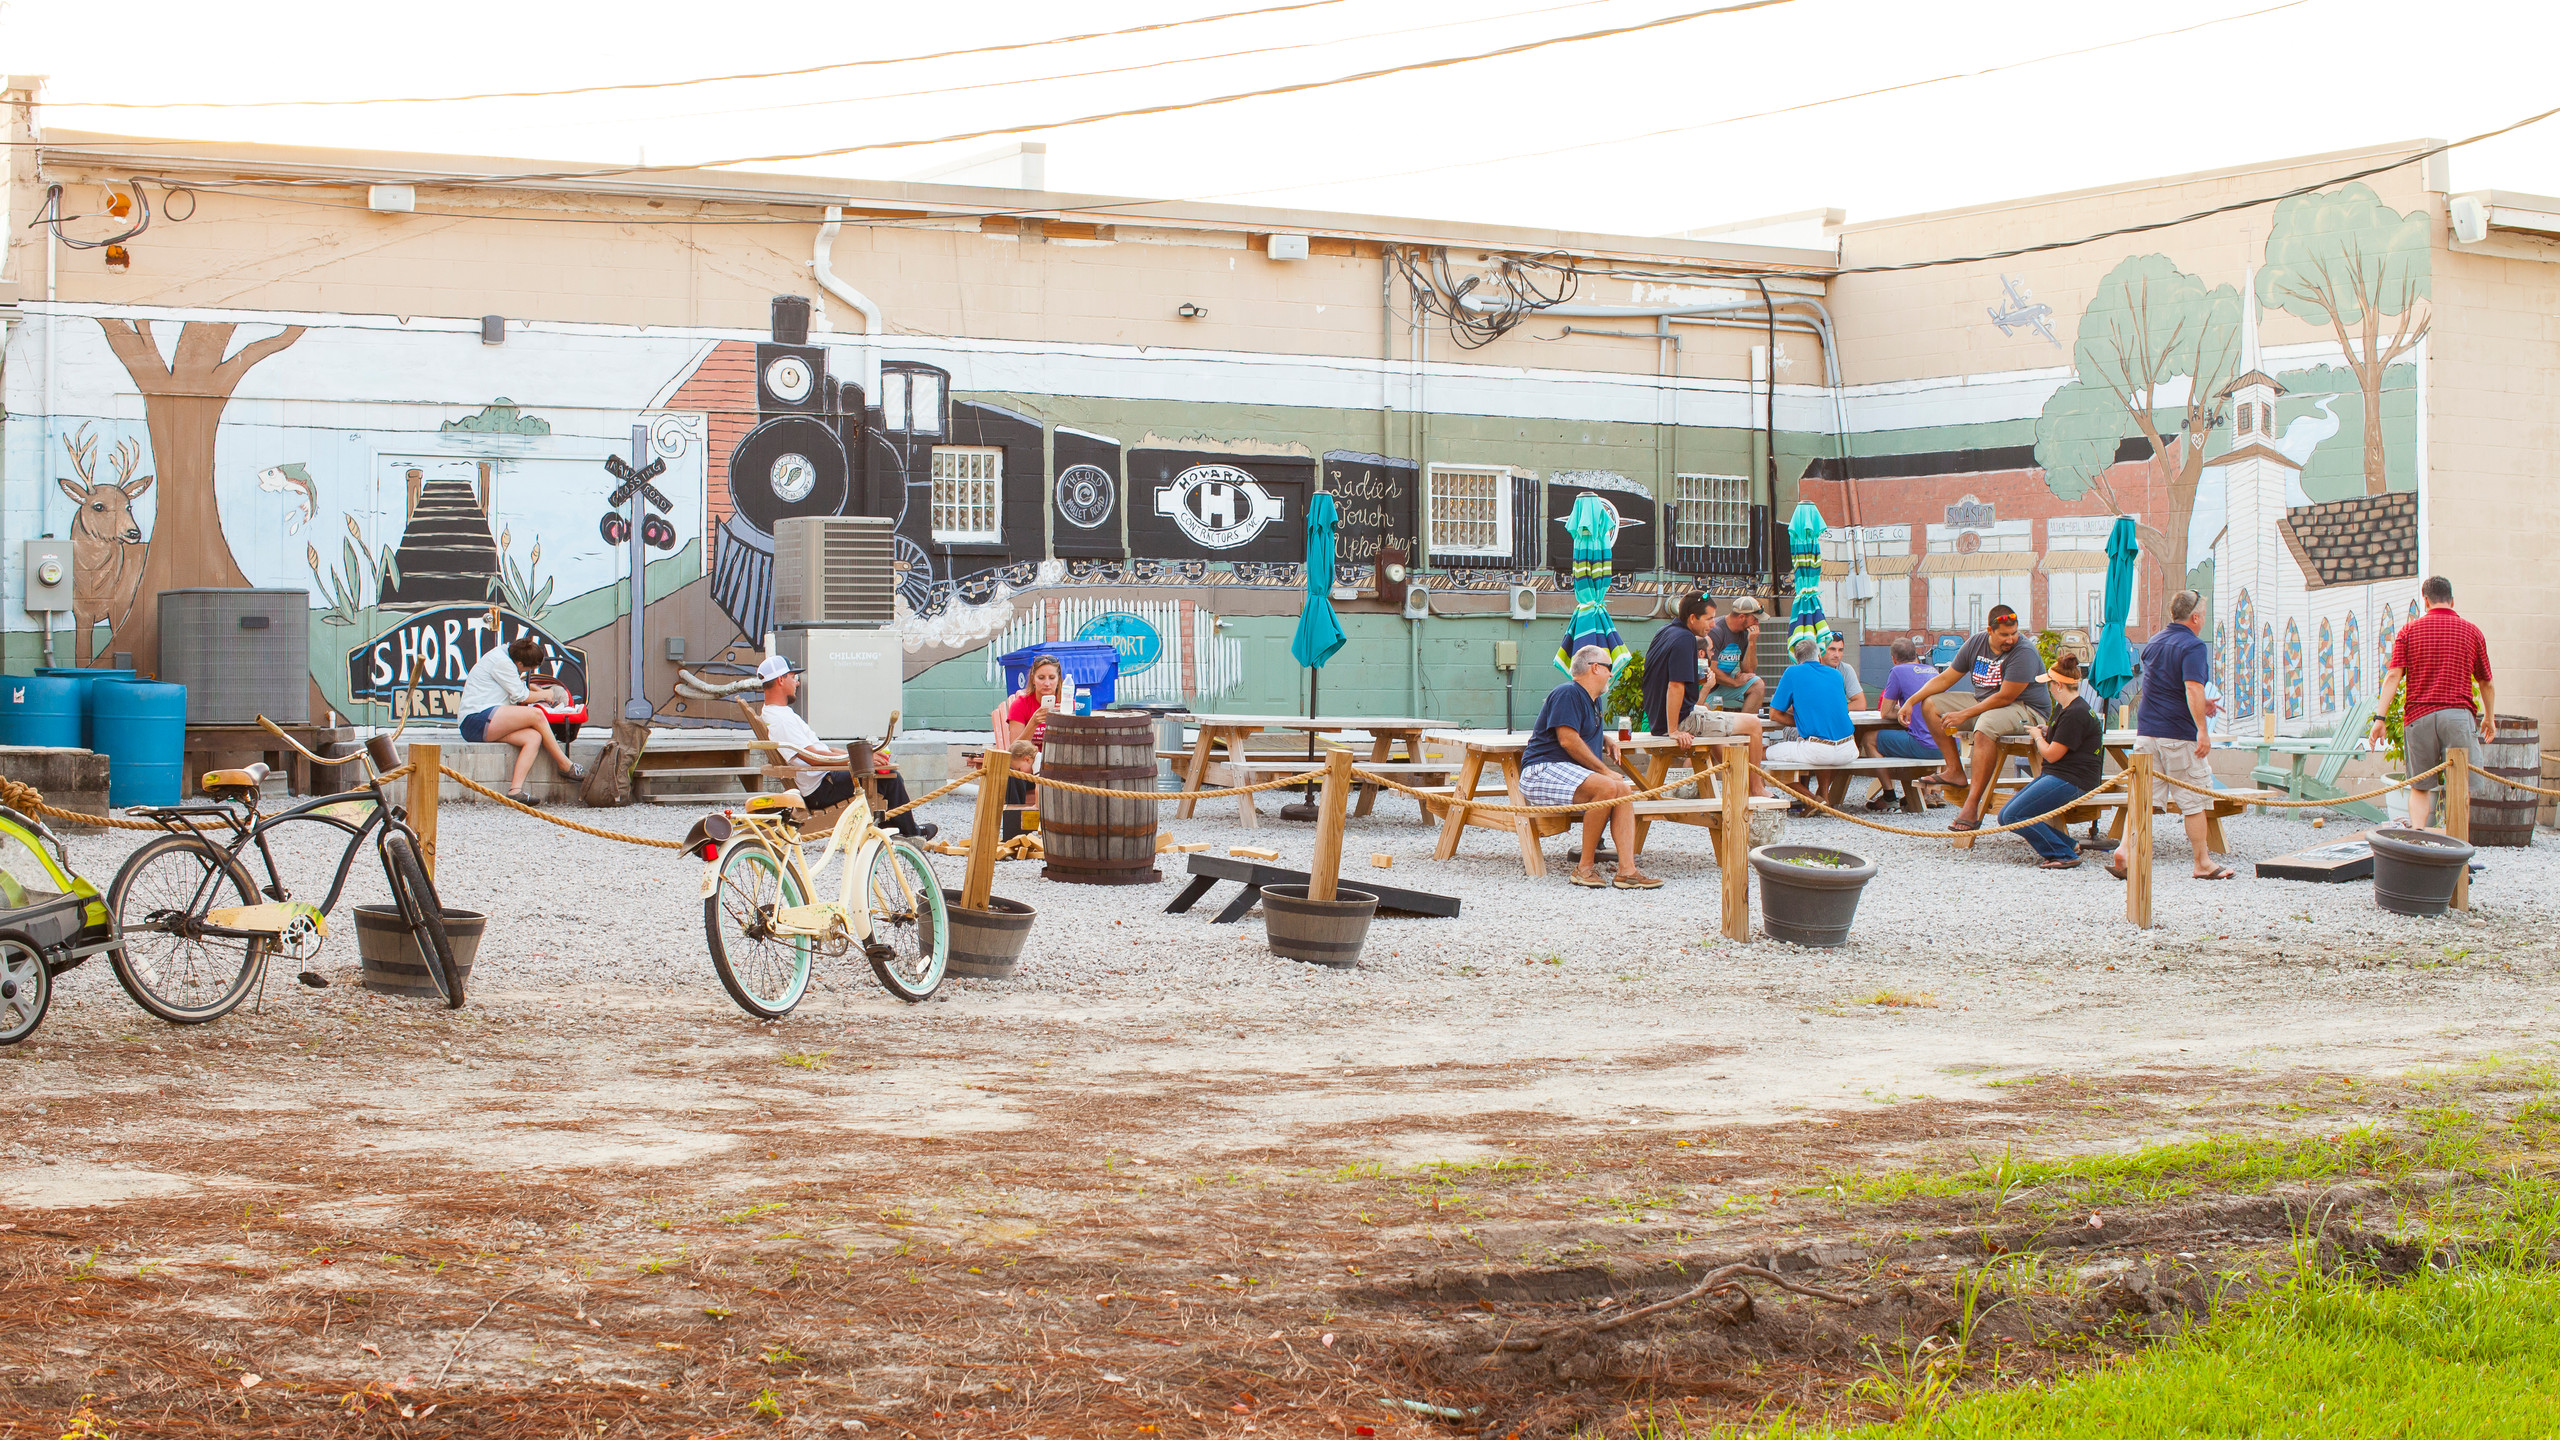 Bikes and patios